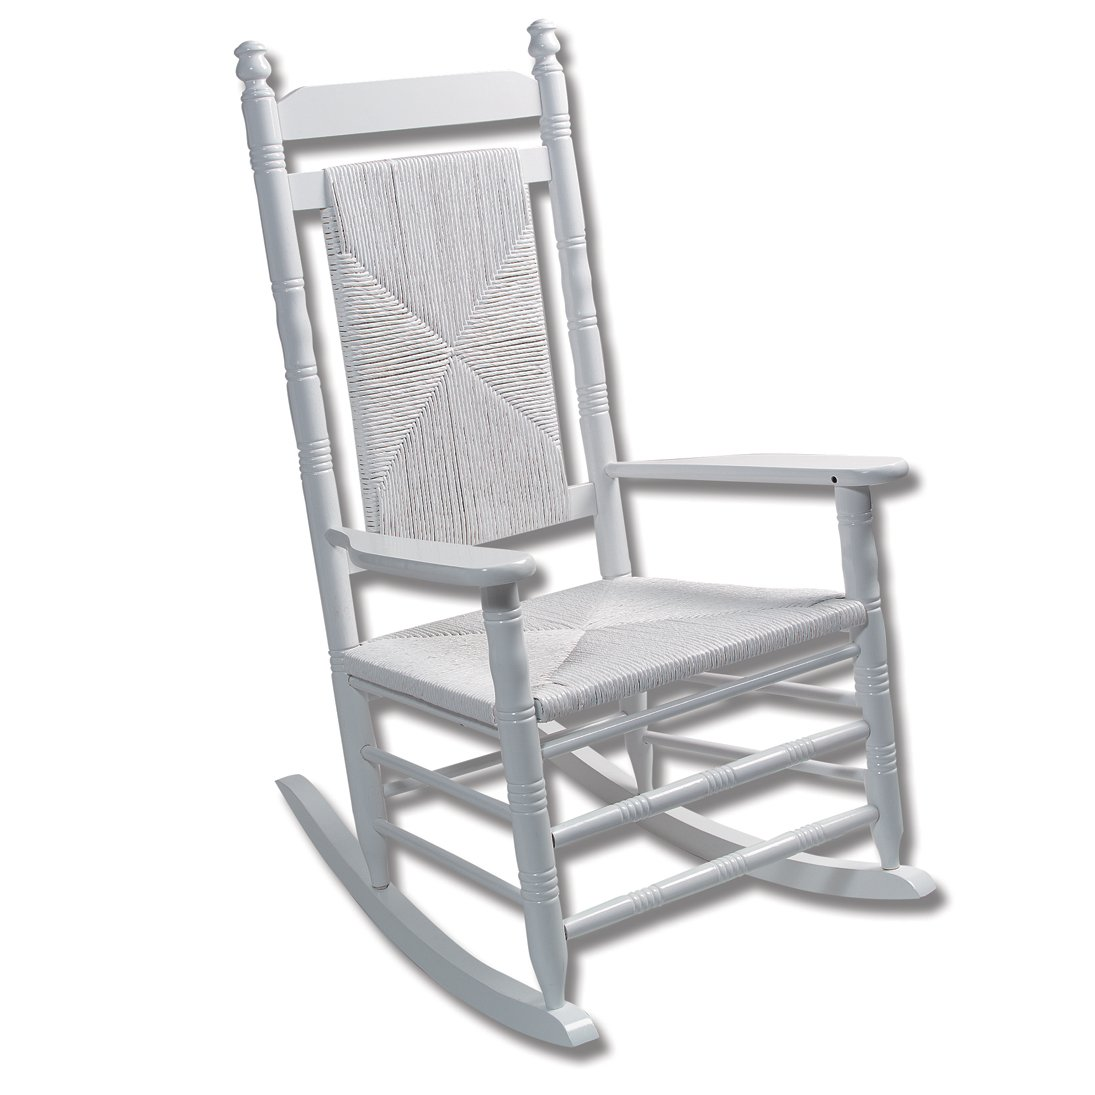 Fully Assembled Woven Seat Rocking Chair   White